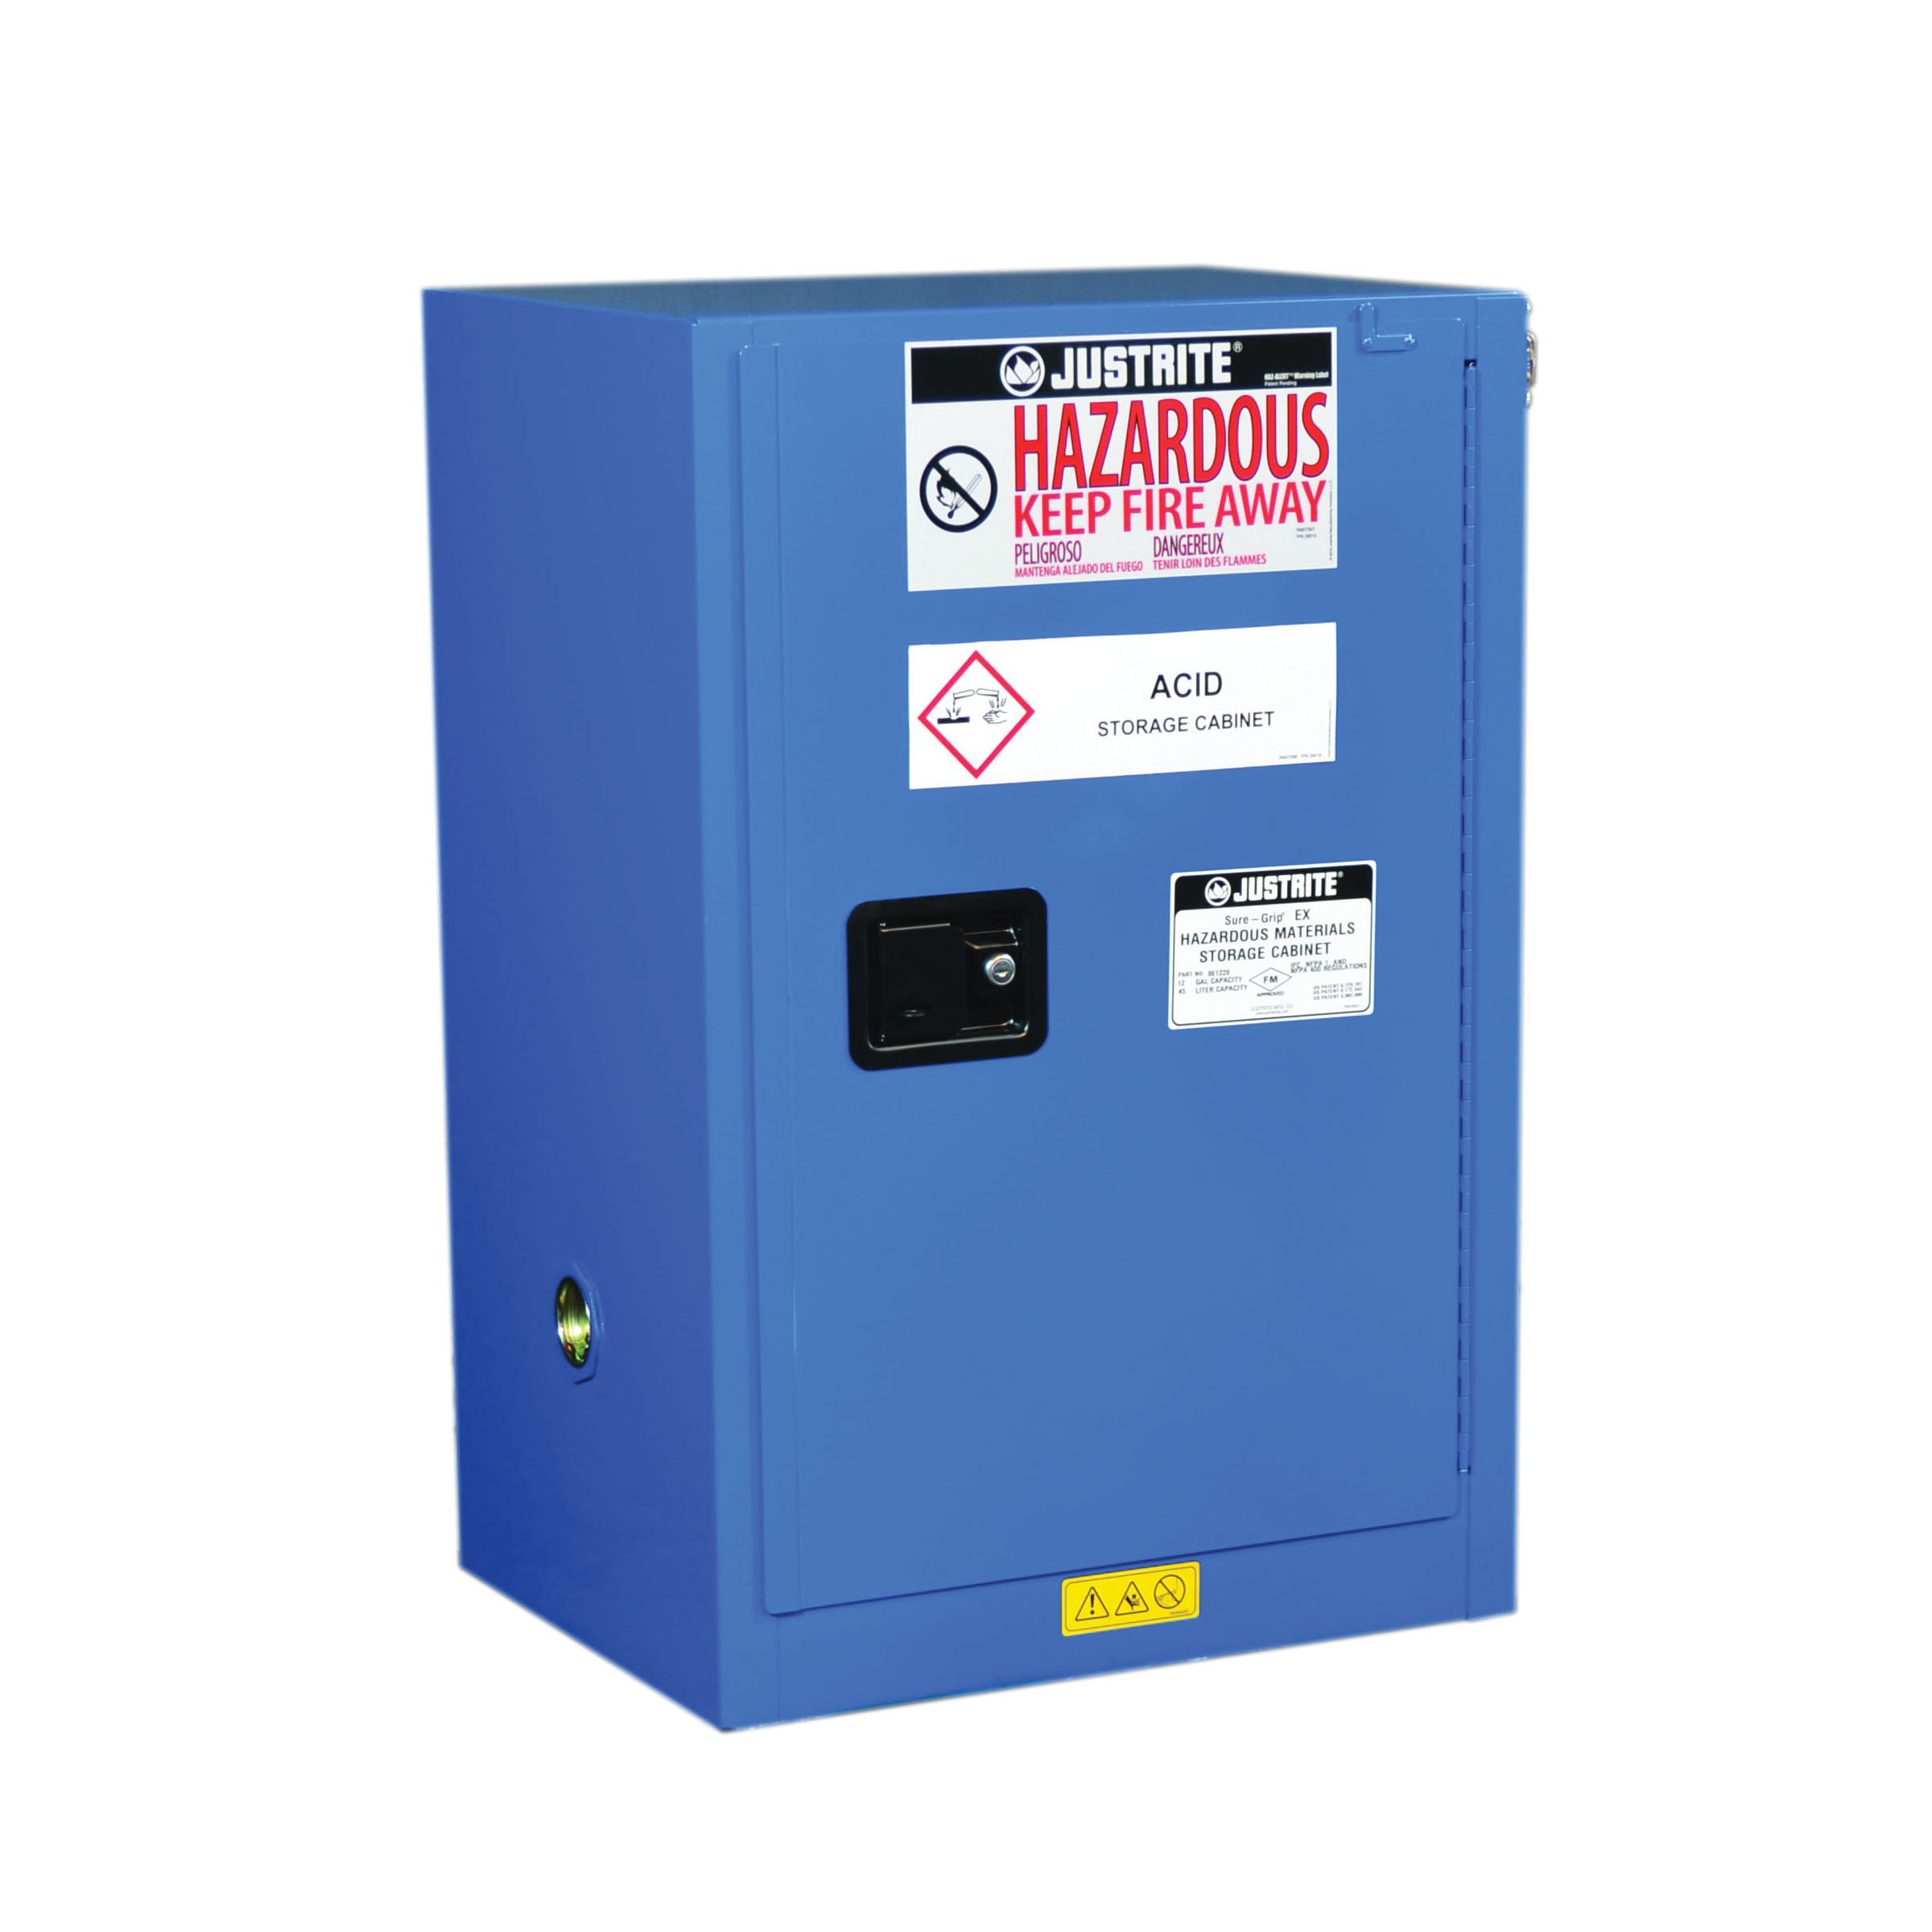 Justrite® 8612282 ChemCor® Compact Corrosive Safety Cabinet, 12 gal Capacity, U-Loc™ Handle, 35 in H x 23-1/4 in W x 18 in D, Self-Close Door, 1 Door, 1 Shelve, 18 ga Cold Rolled Steel, Royal Blue